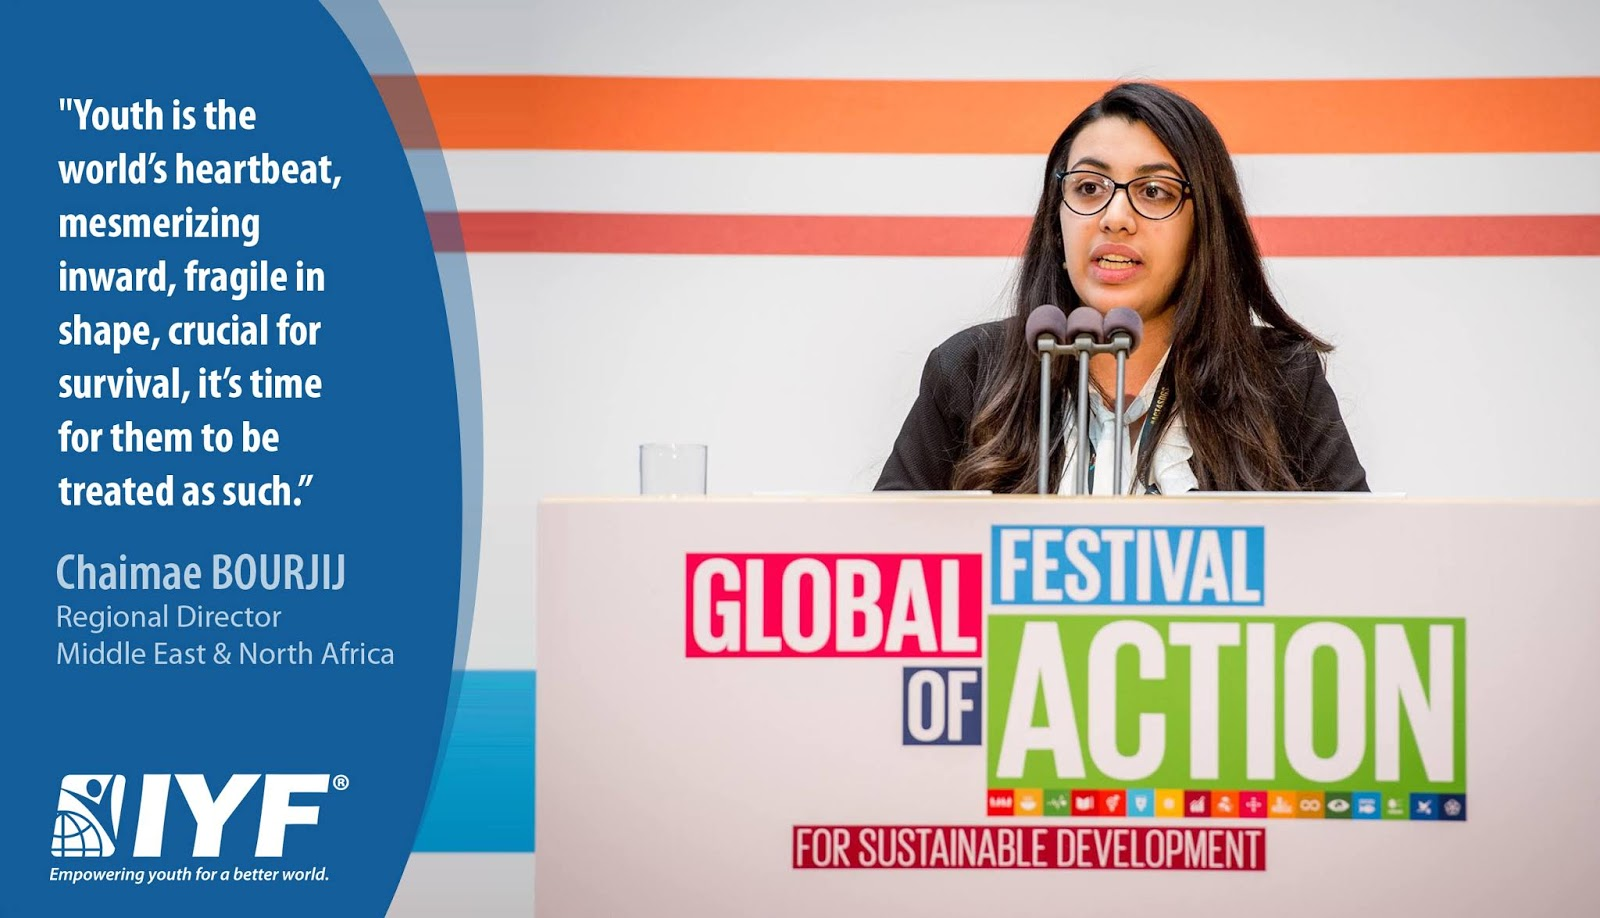 Chaimae BOURJIJ, IYF Regional Director for Middle East & North Africa